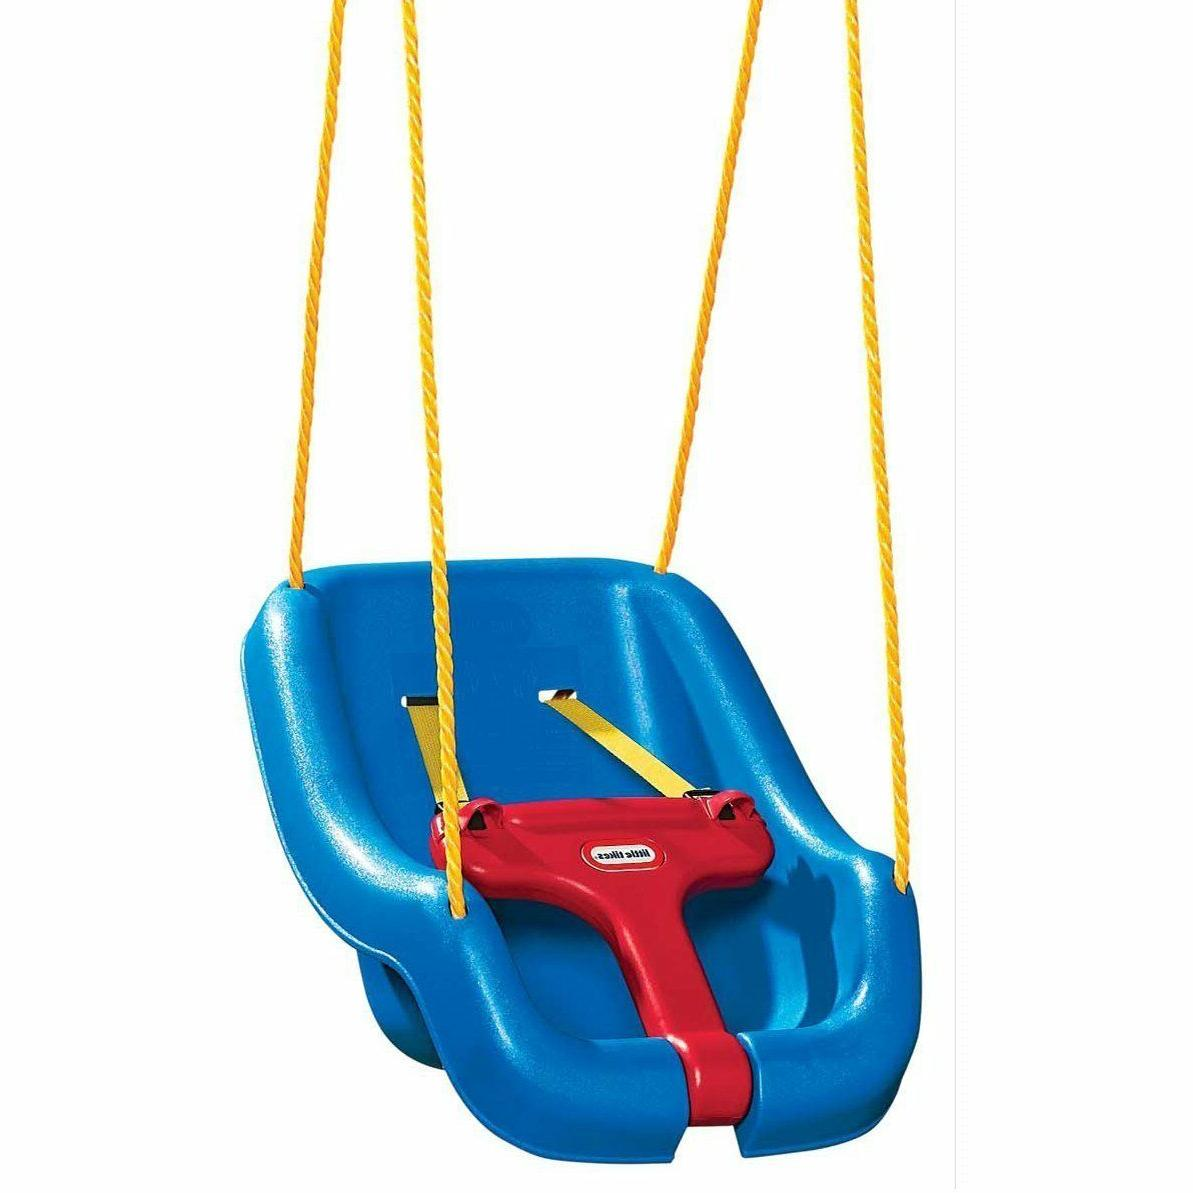 Little 'n Secure Outdoor Toddler Seat